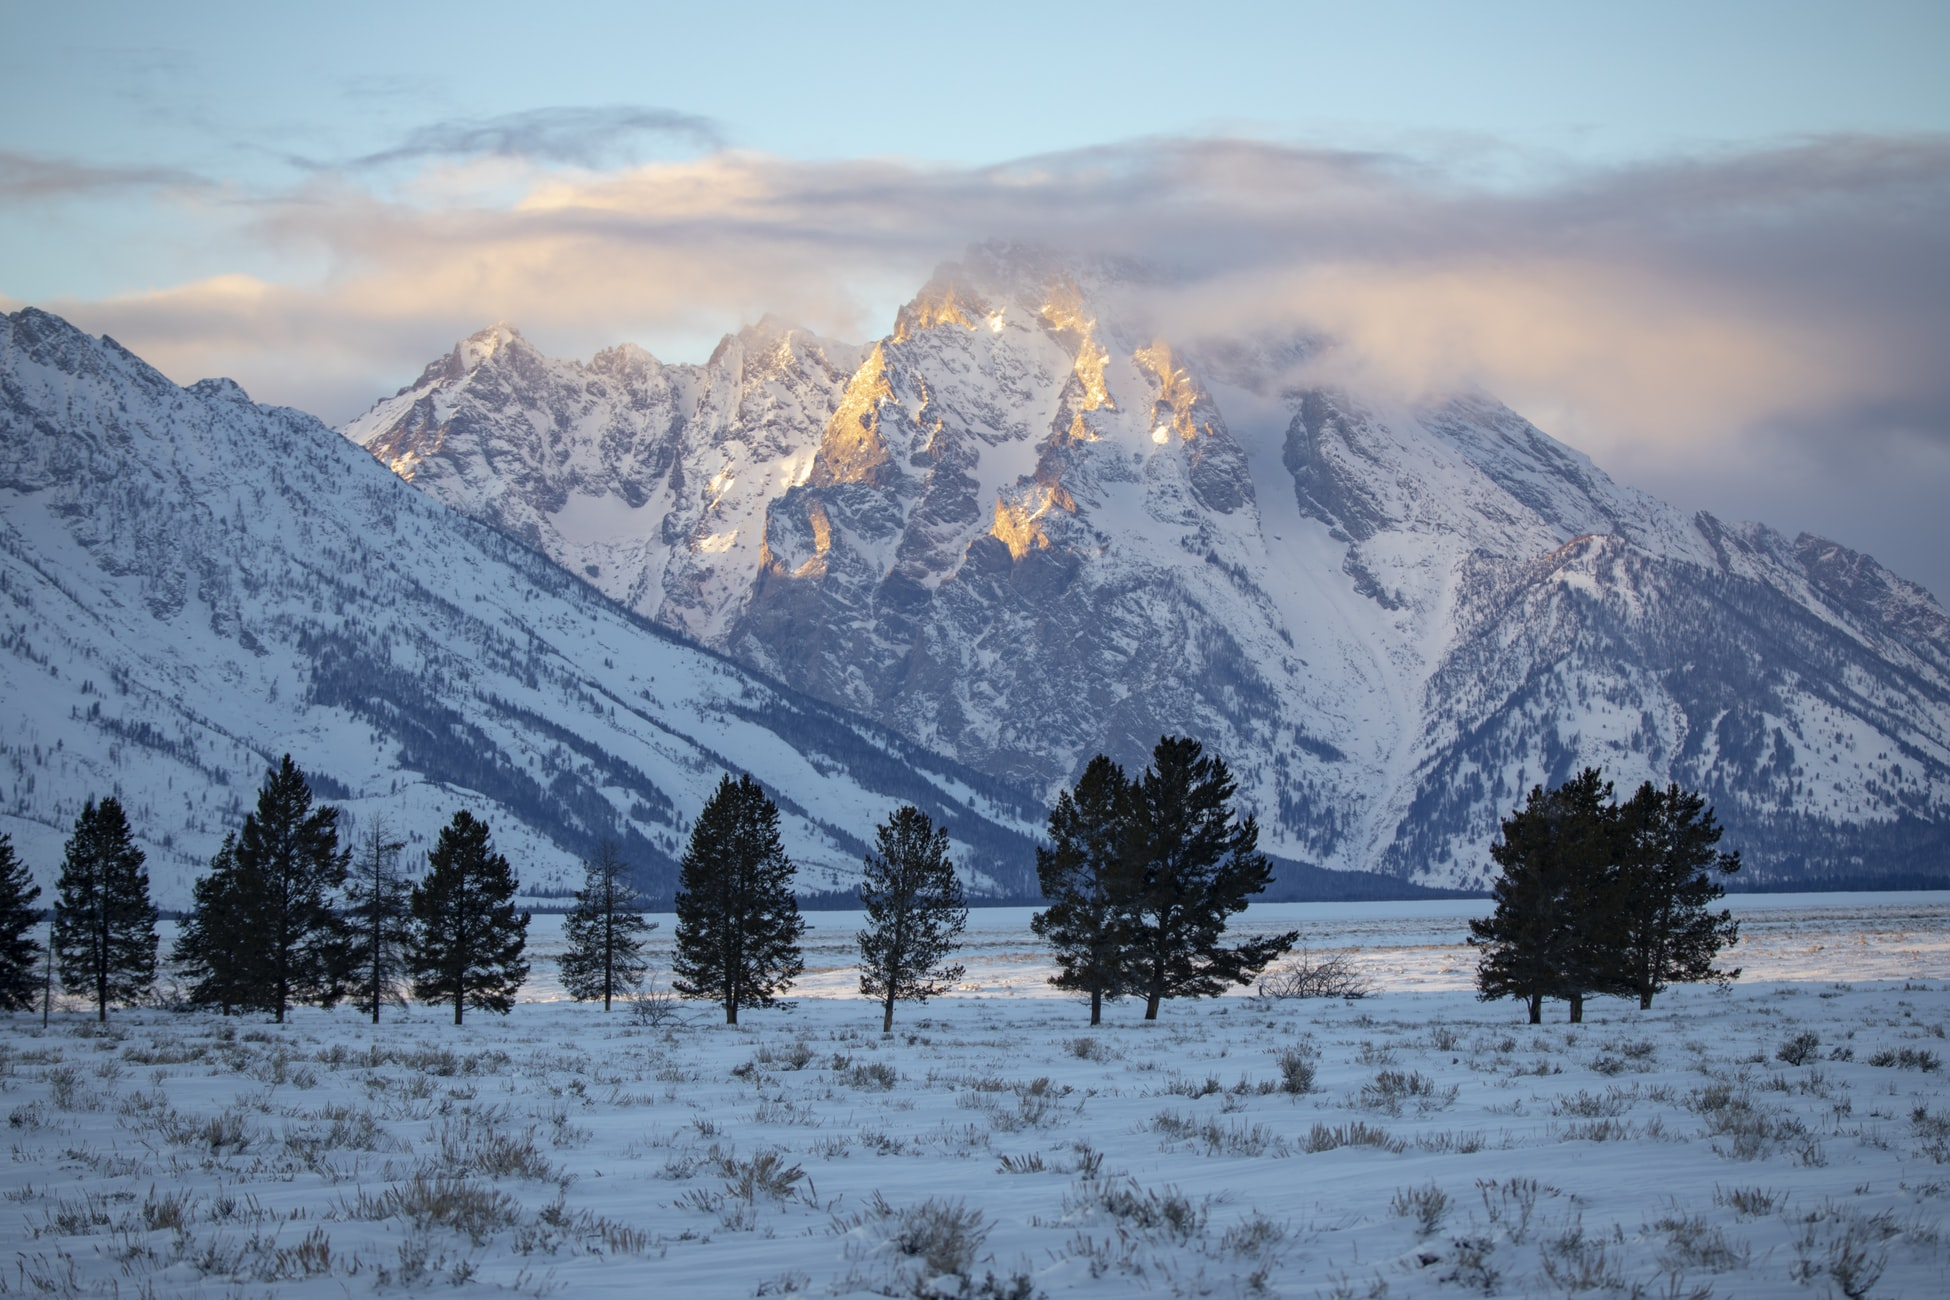 Trekking invernal en Yellowstone y Grand Teton